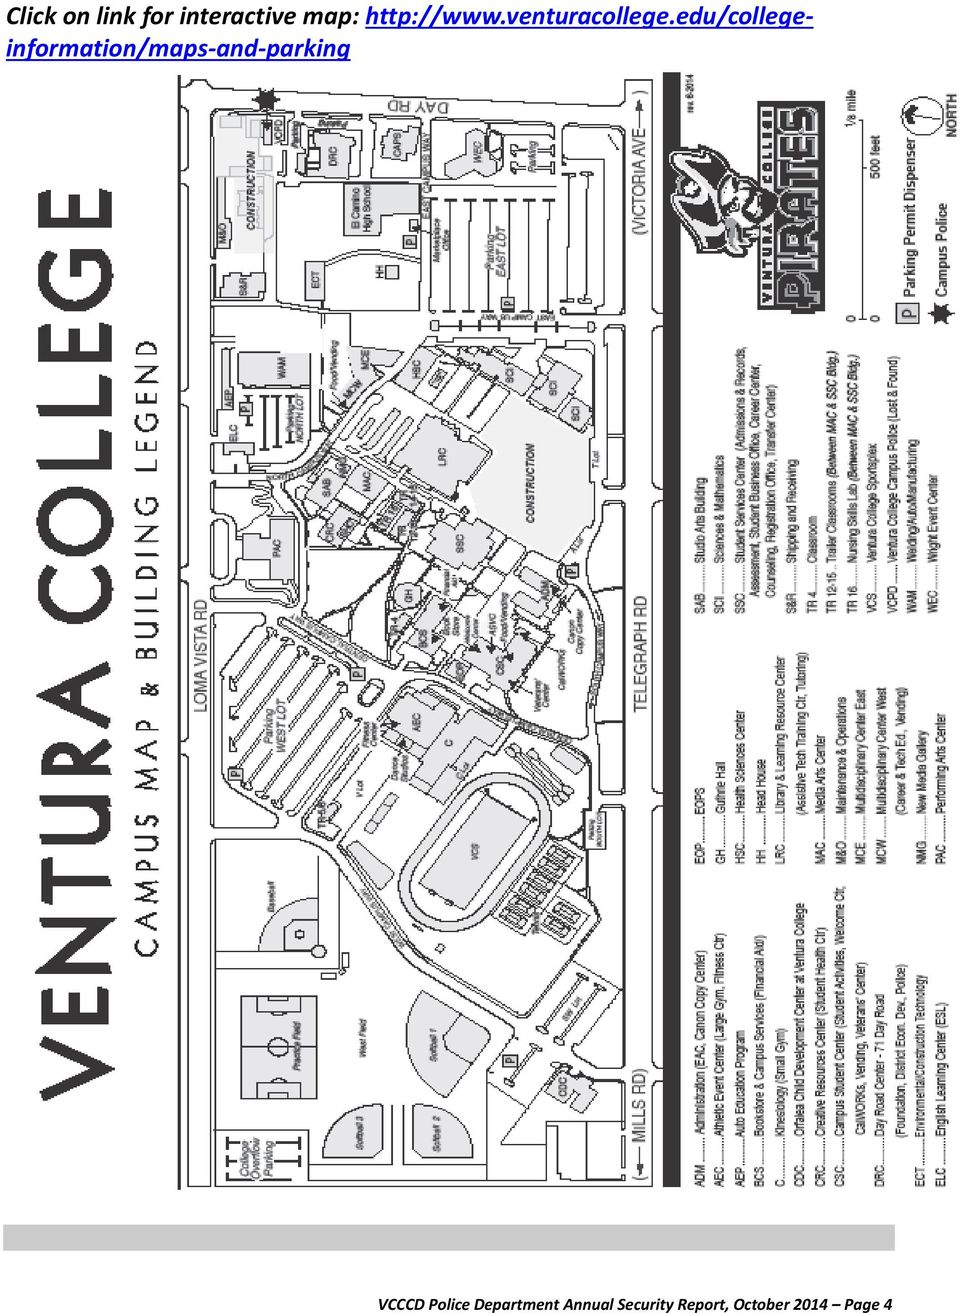 Ventura County Community College District Police Department Annual